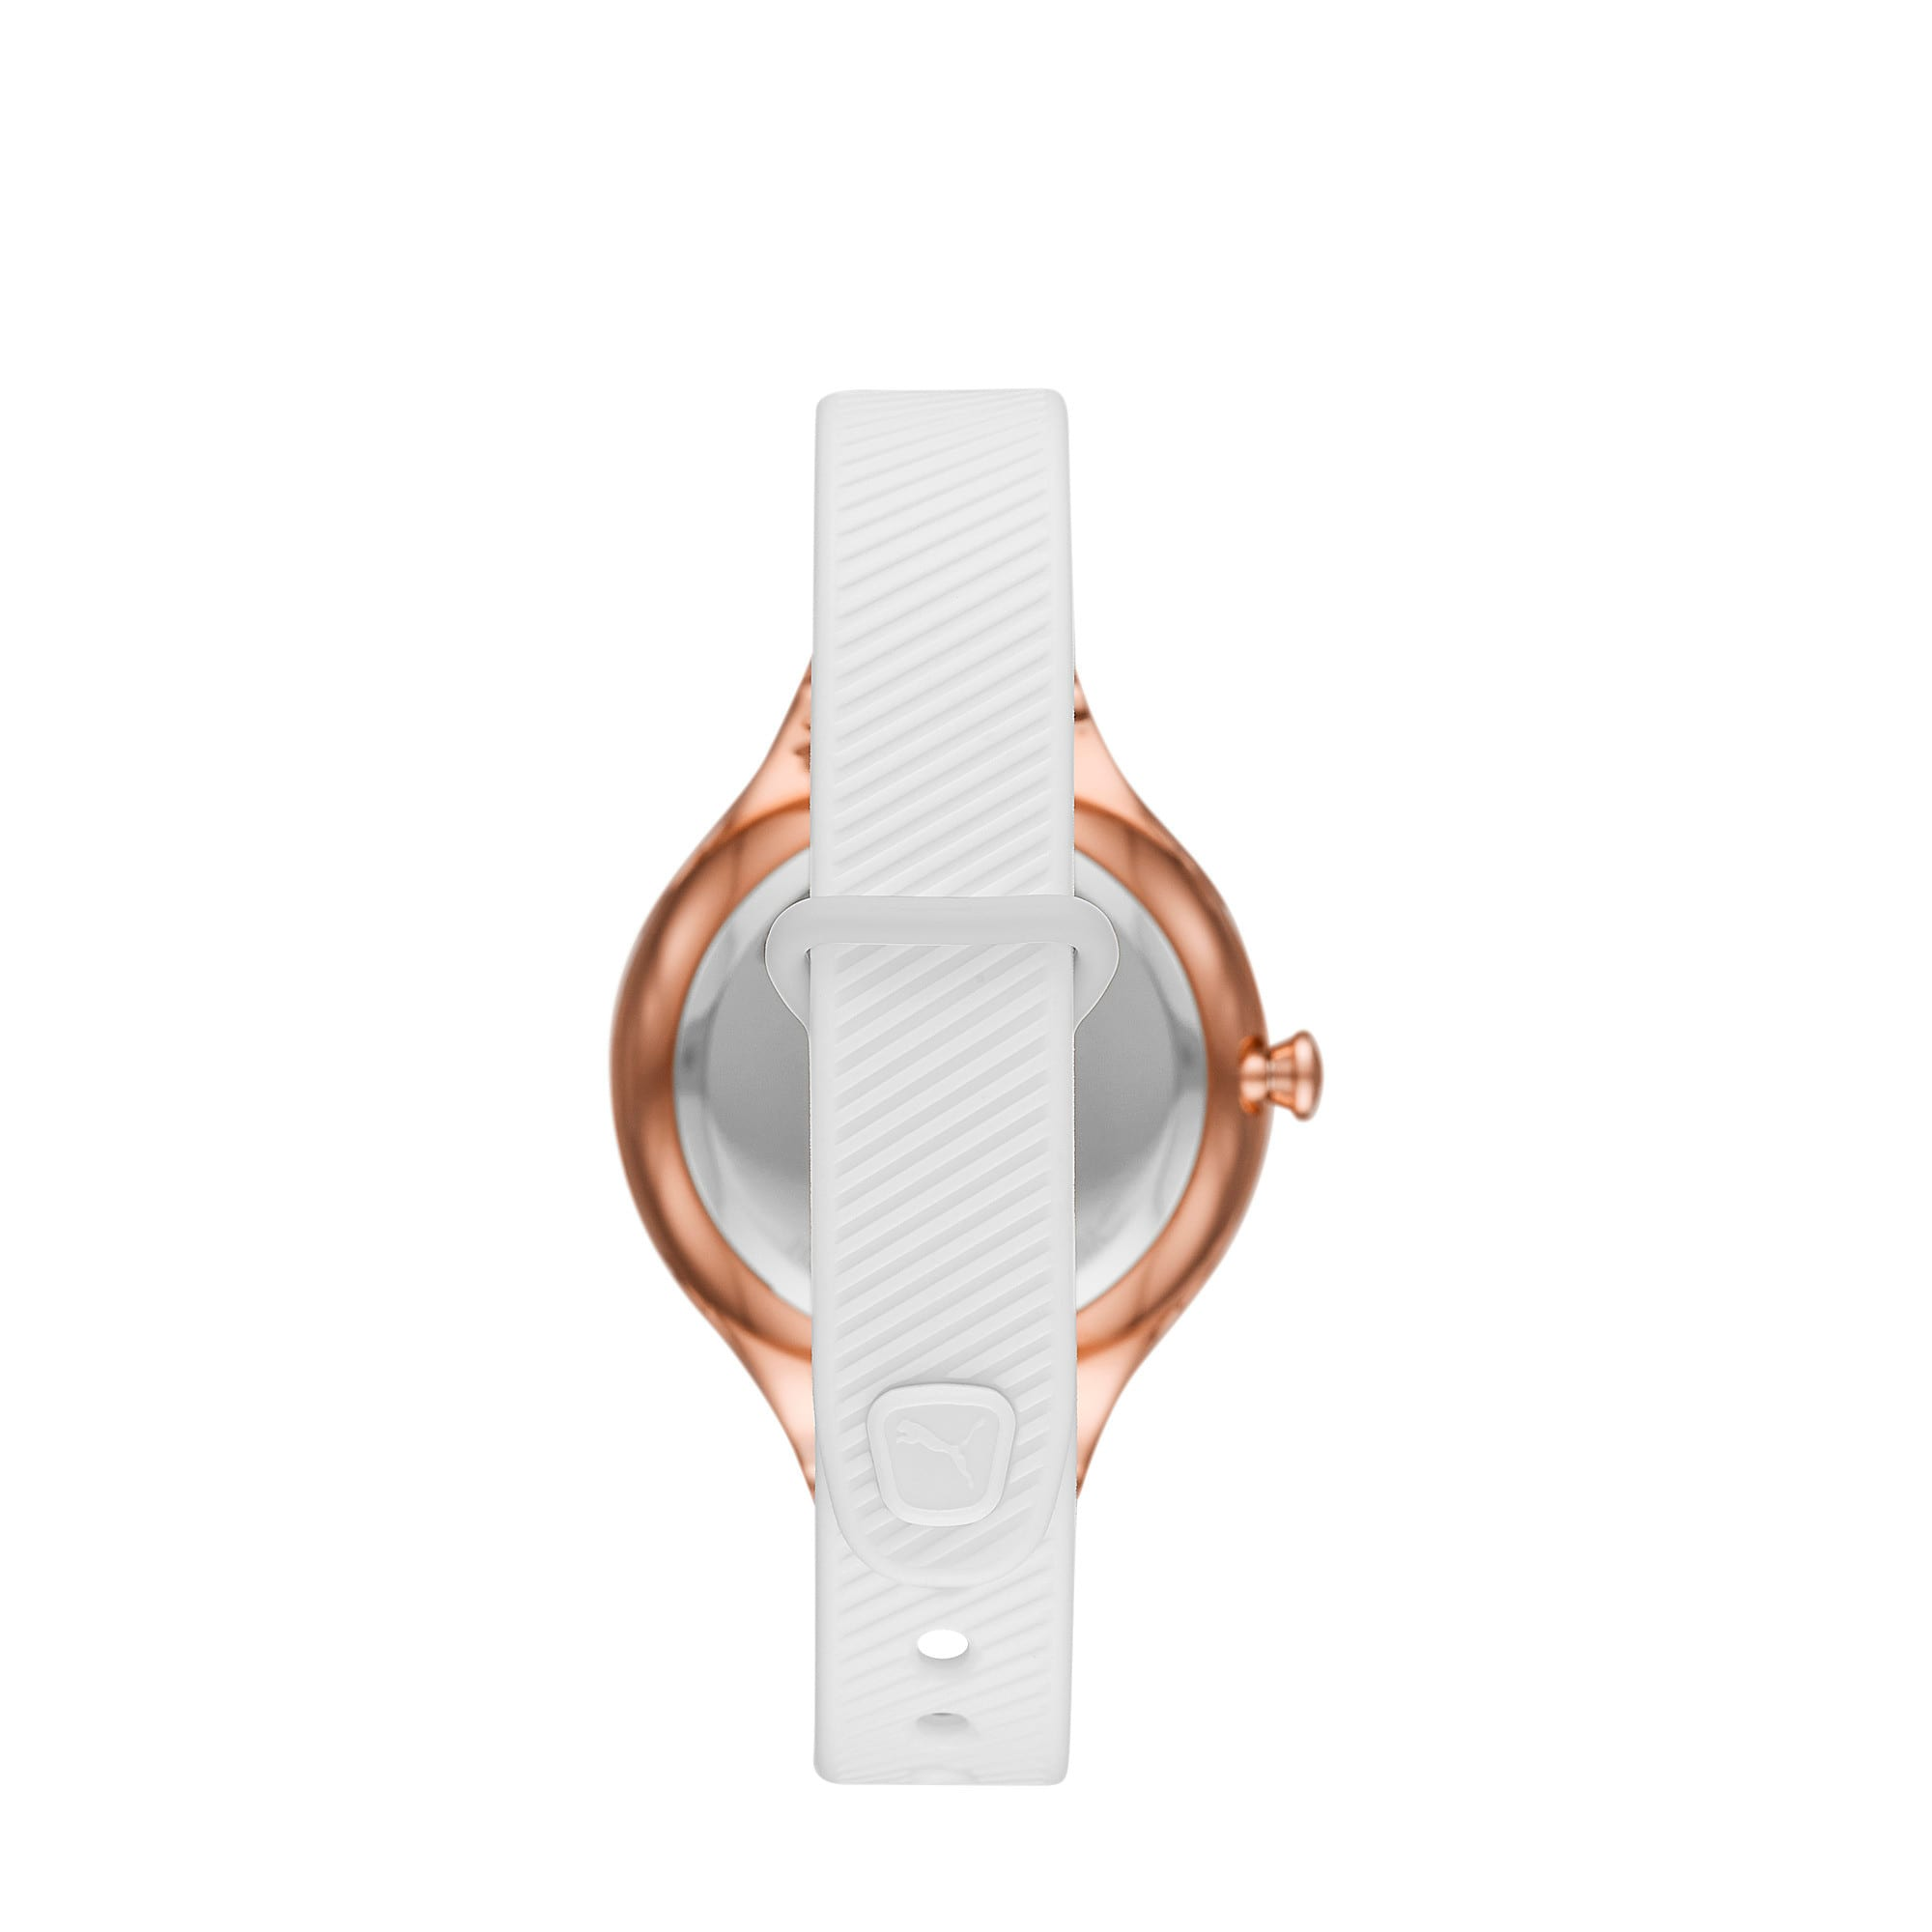 Thumbnail 2 of CONTOUR Ultra Slim Women's Watch, Rose gold/White, medium